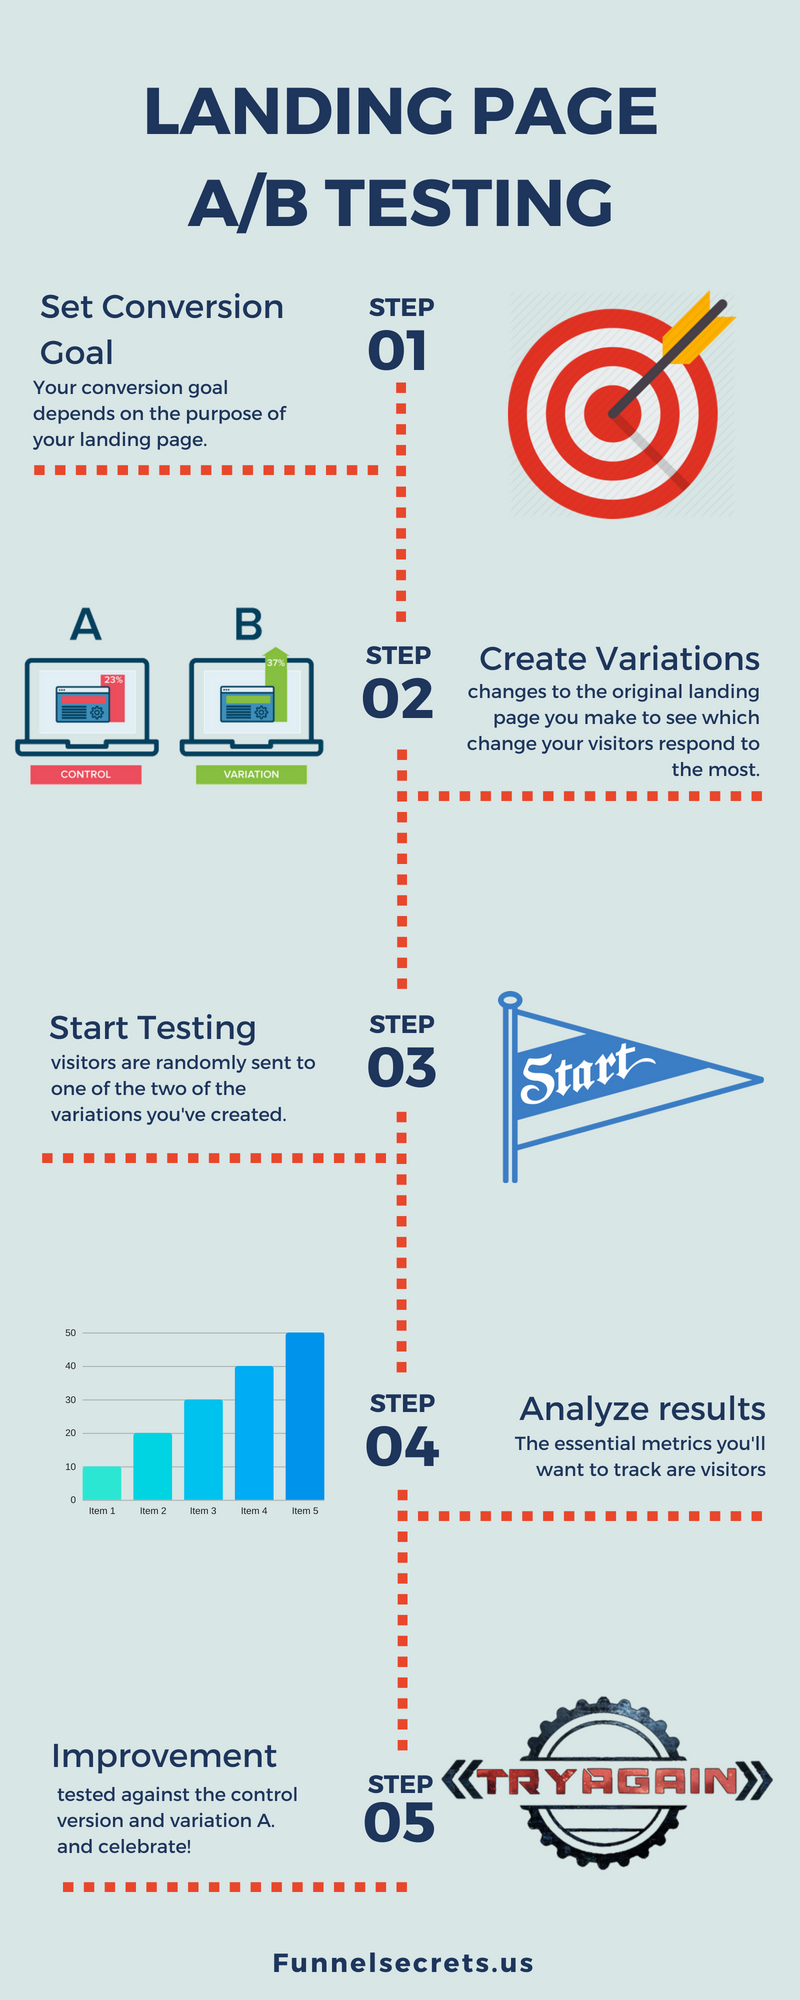 How to AB testing on your landing page